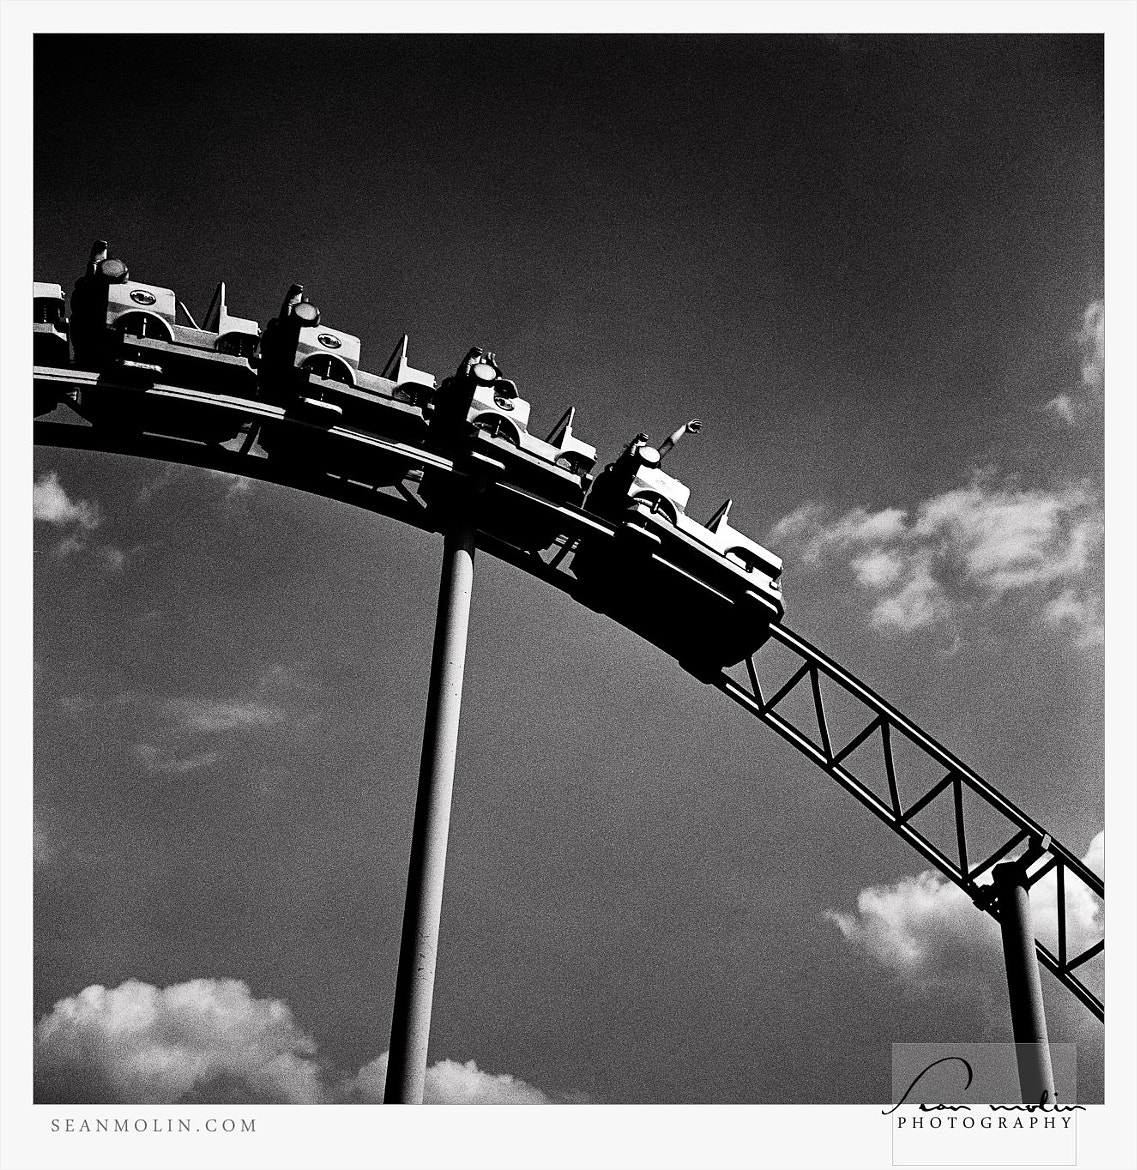 Photograph Rollei Coaster by Sean Molin on 500px